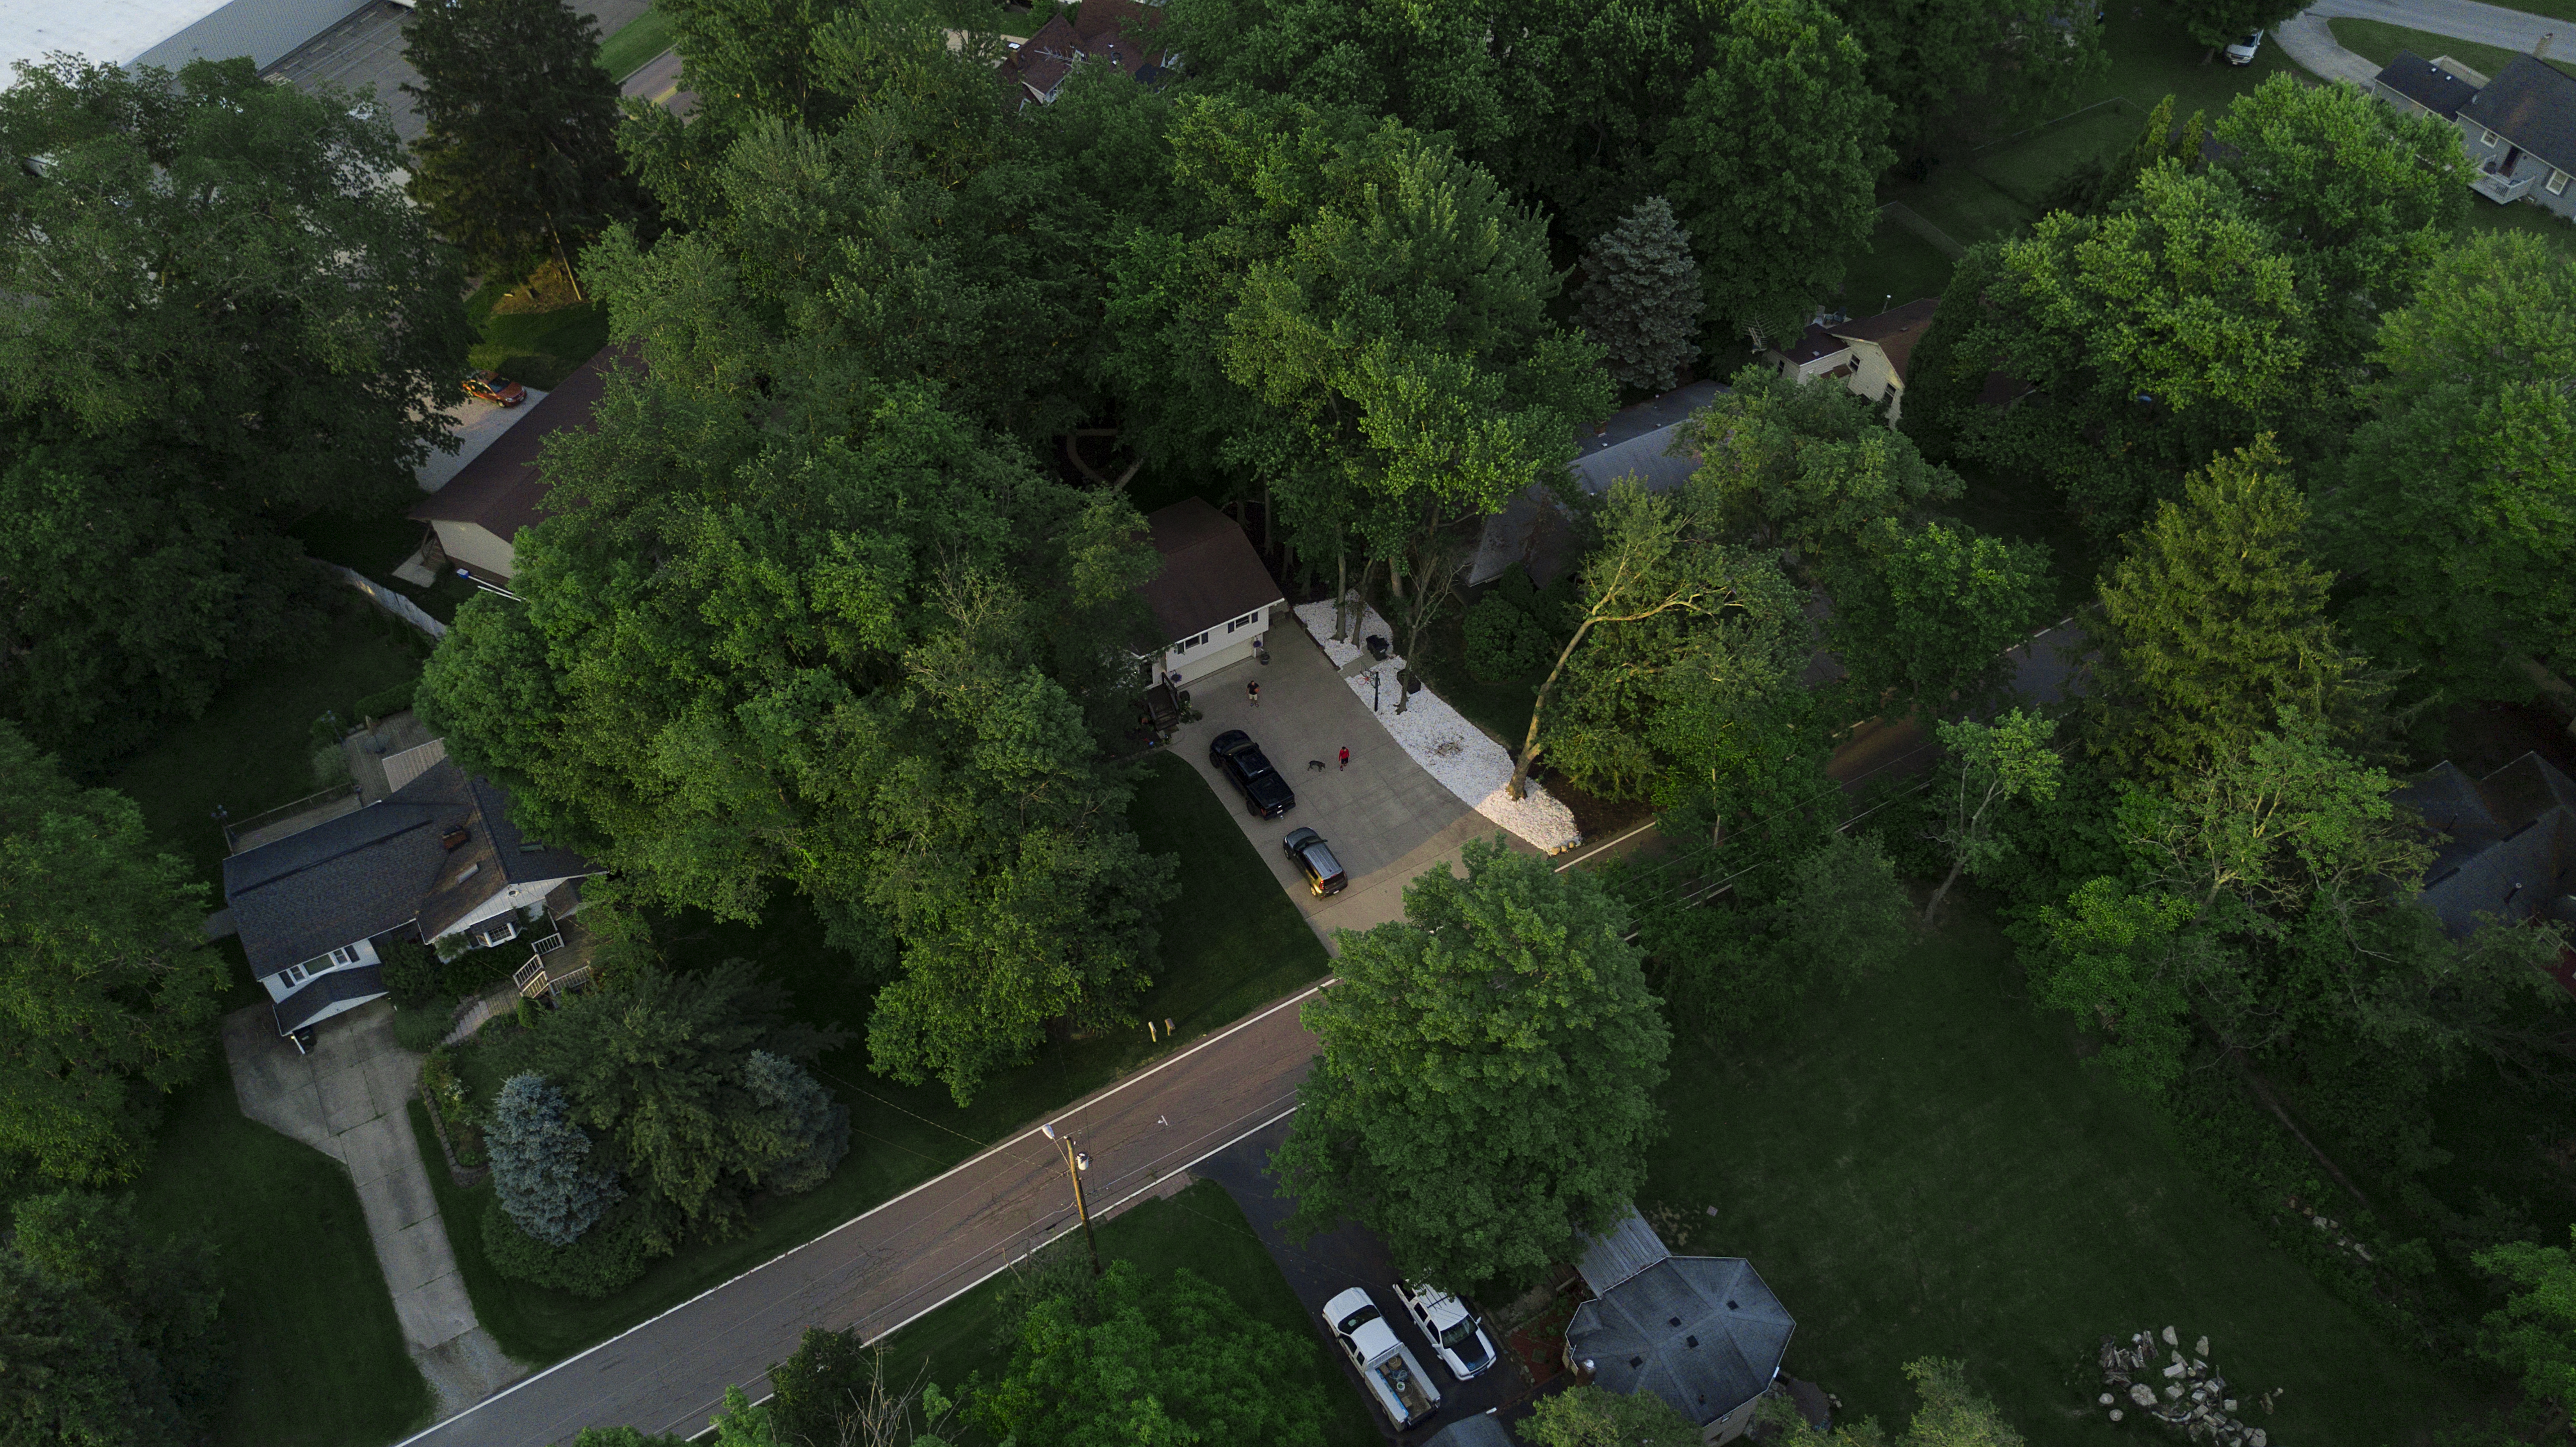 aerial photography stow ohio dji